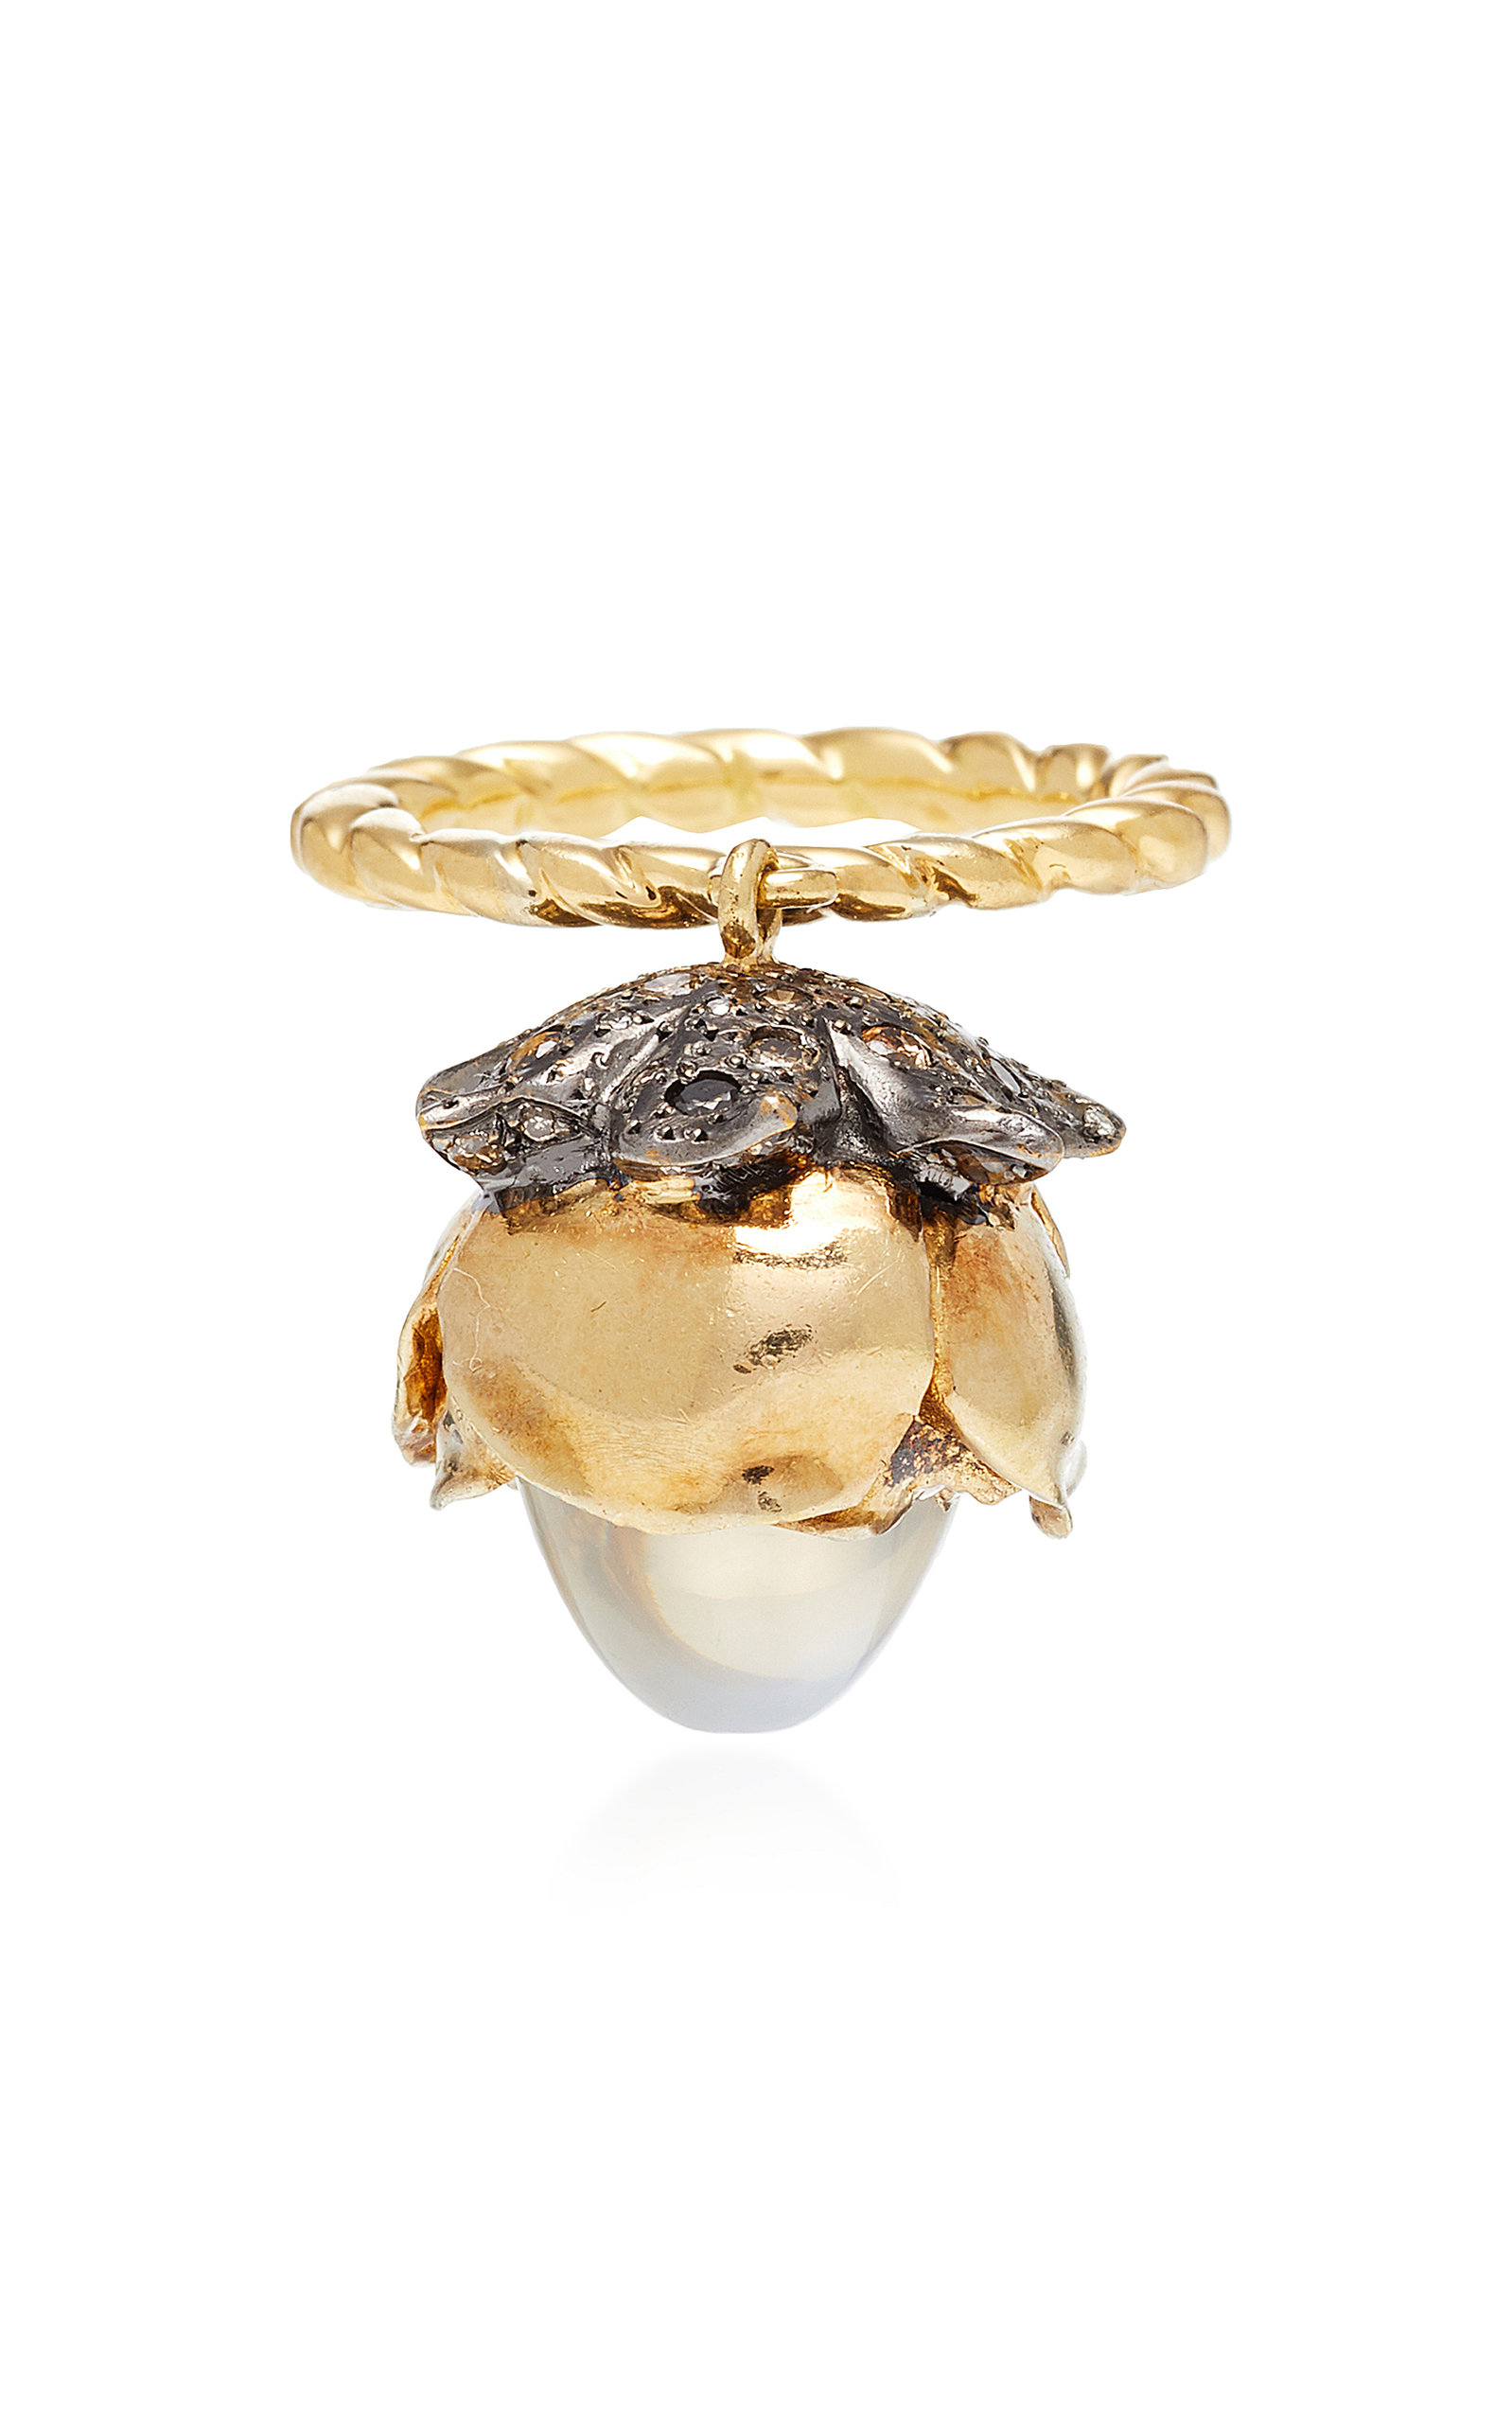 ONE-OF-A-KIND MOBILE MOONSTONE FLOWER RING